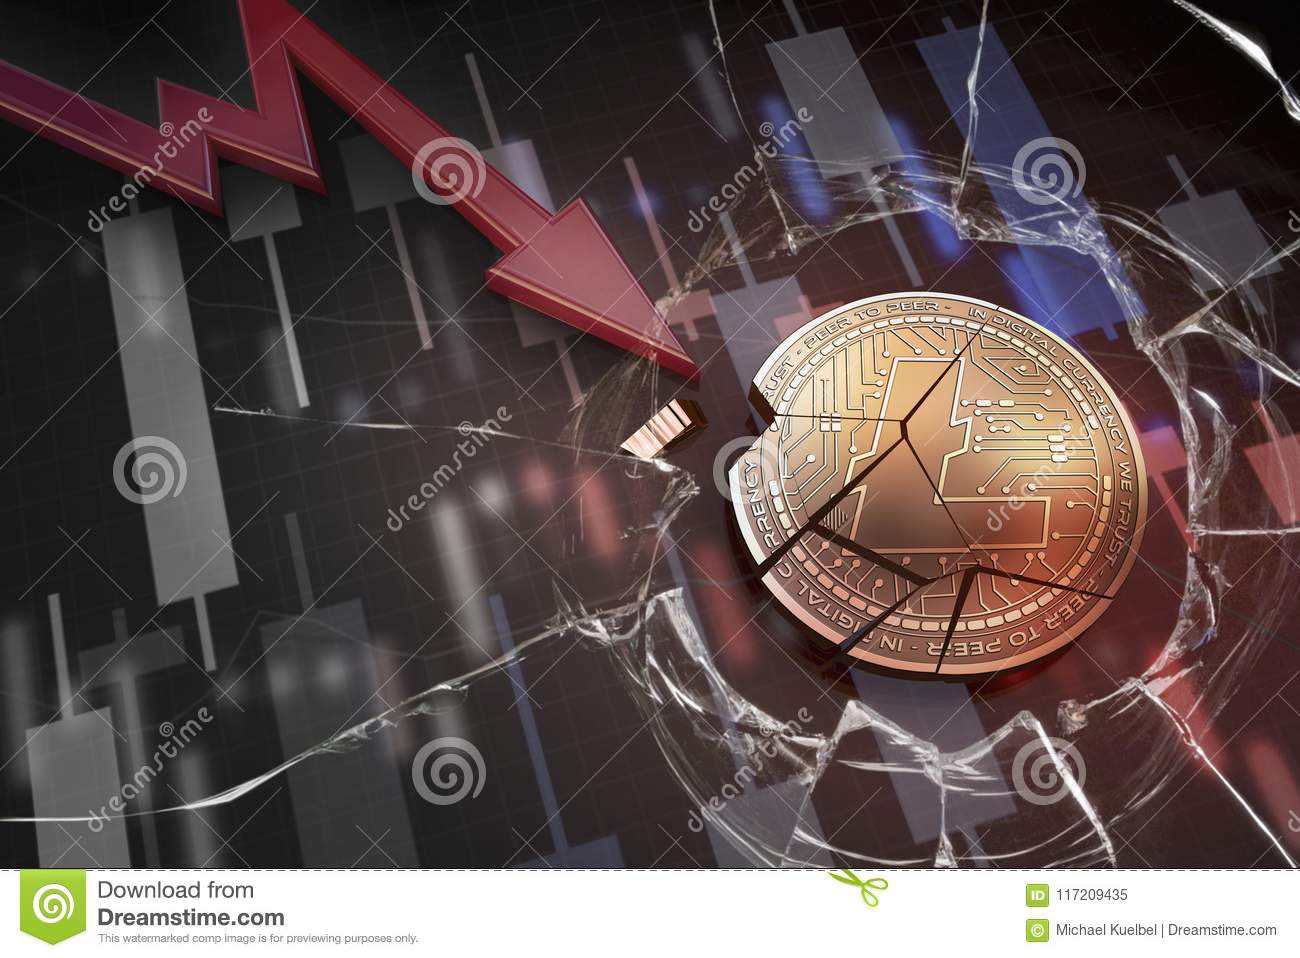 Shiny golden LITECOIN cryptocurrency coin broken on negative chart crash baisse falling lost deficit 3d rendering